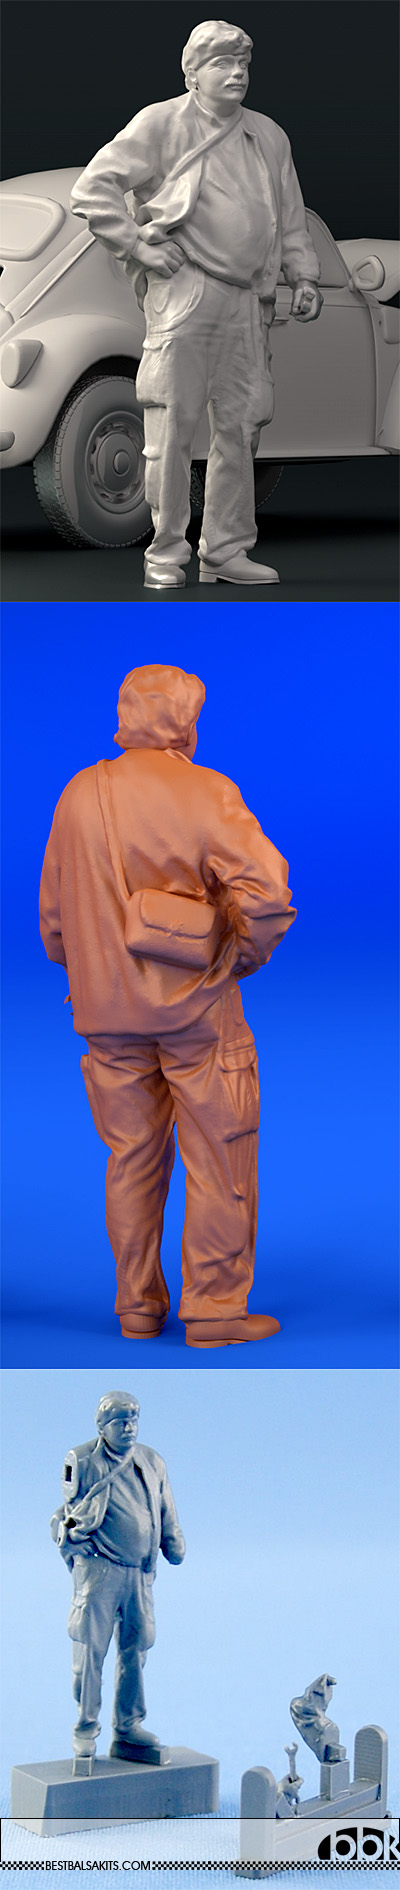 NORTHSTAR 1/43 MECHANIC FIGURINI STANDING AT EASE